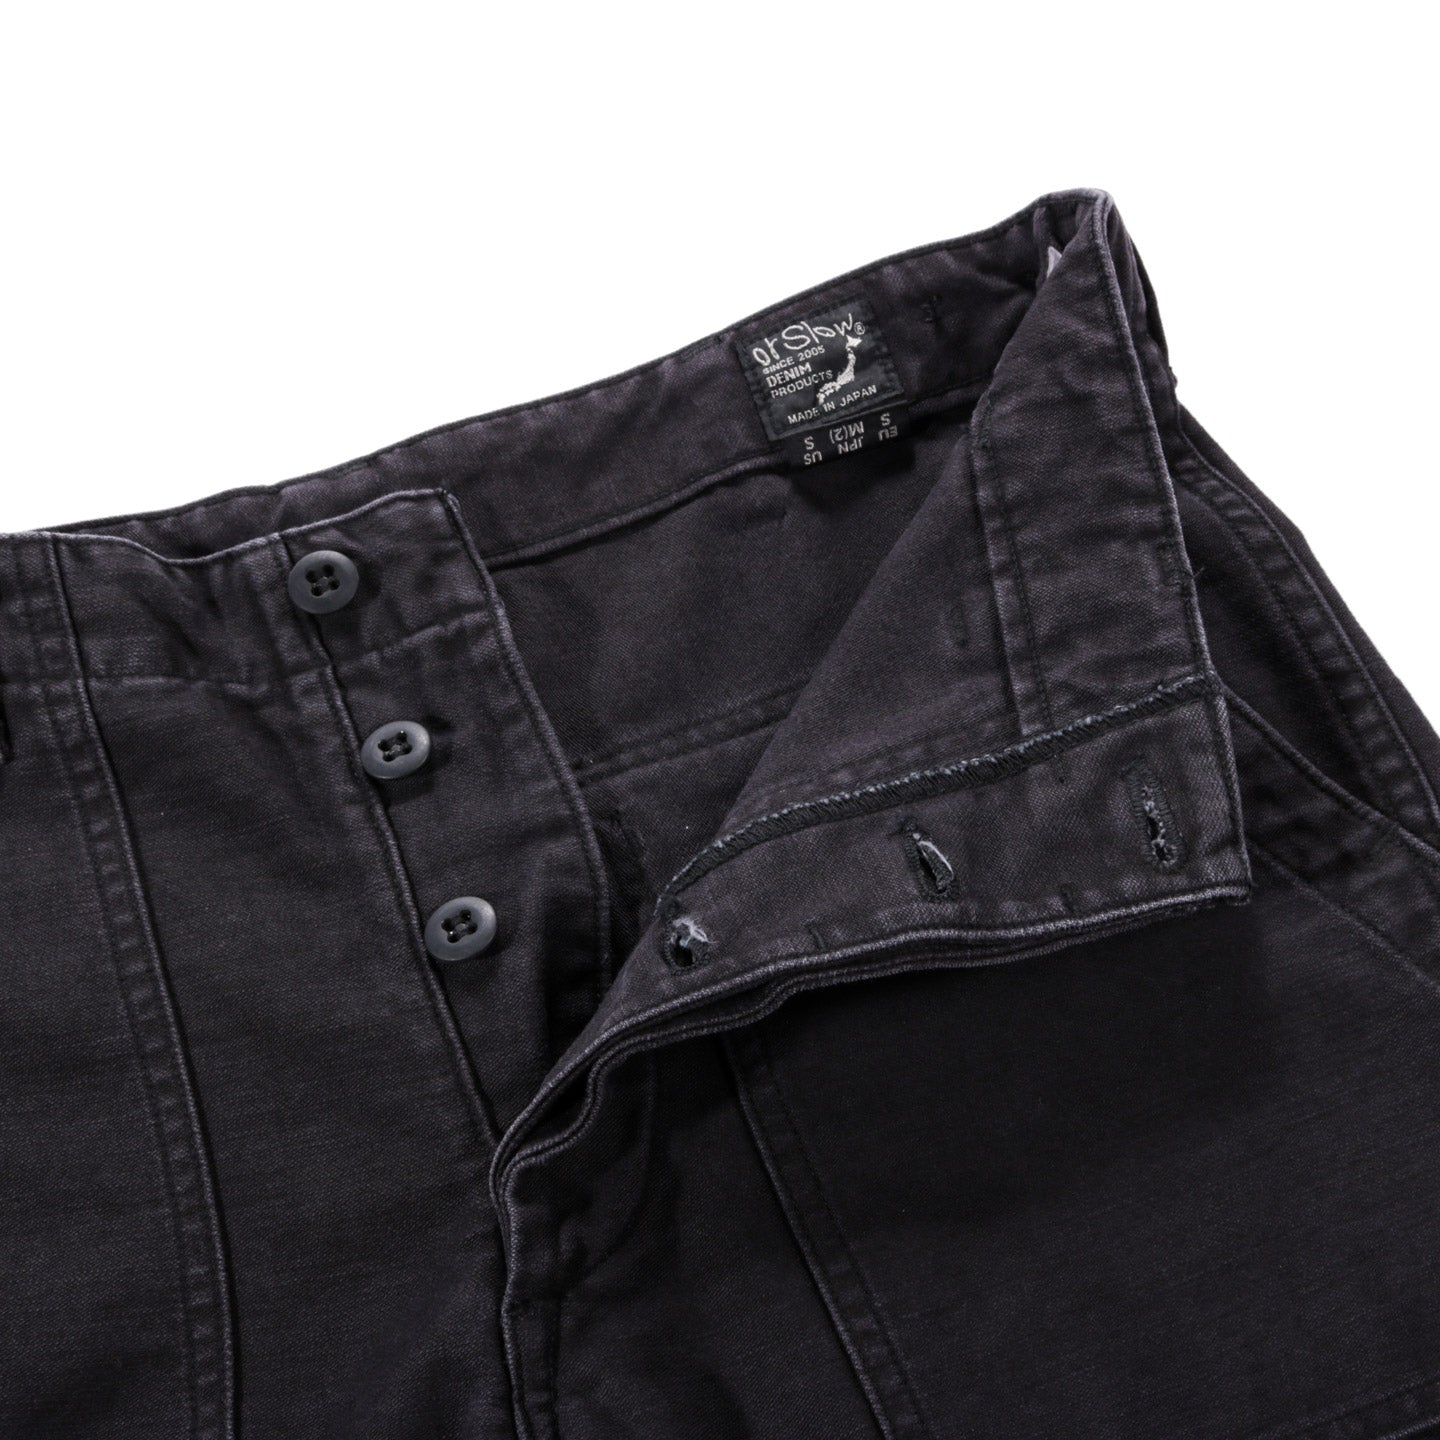 ORSLOW US ARMY FATIGUE PANTS BLACK STONEWASH REVERSE SATEEN